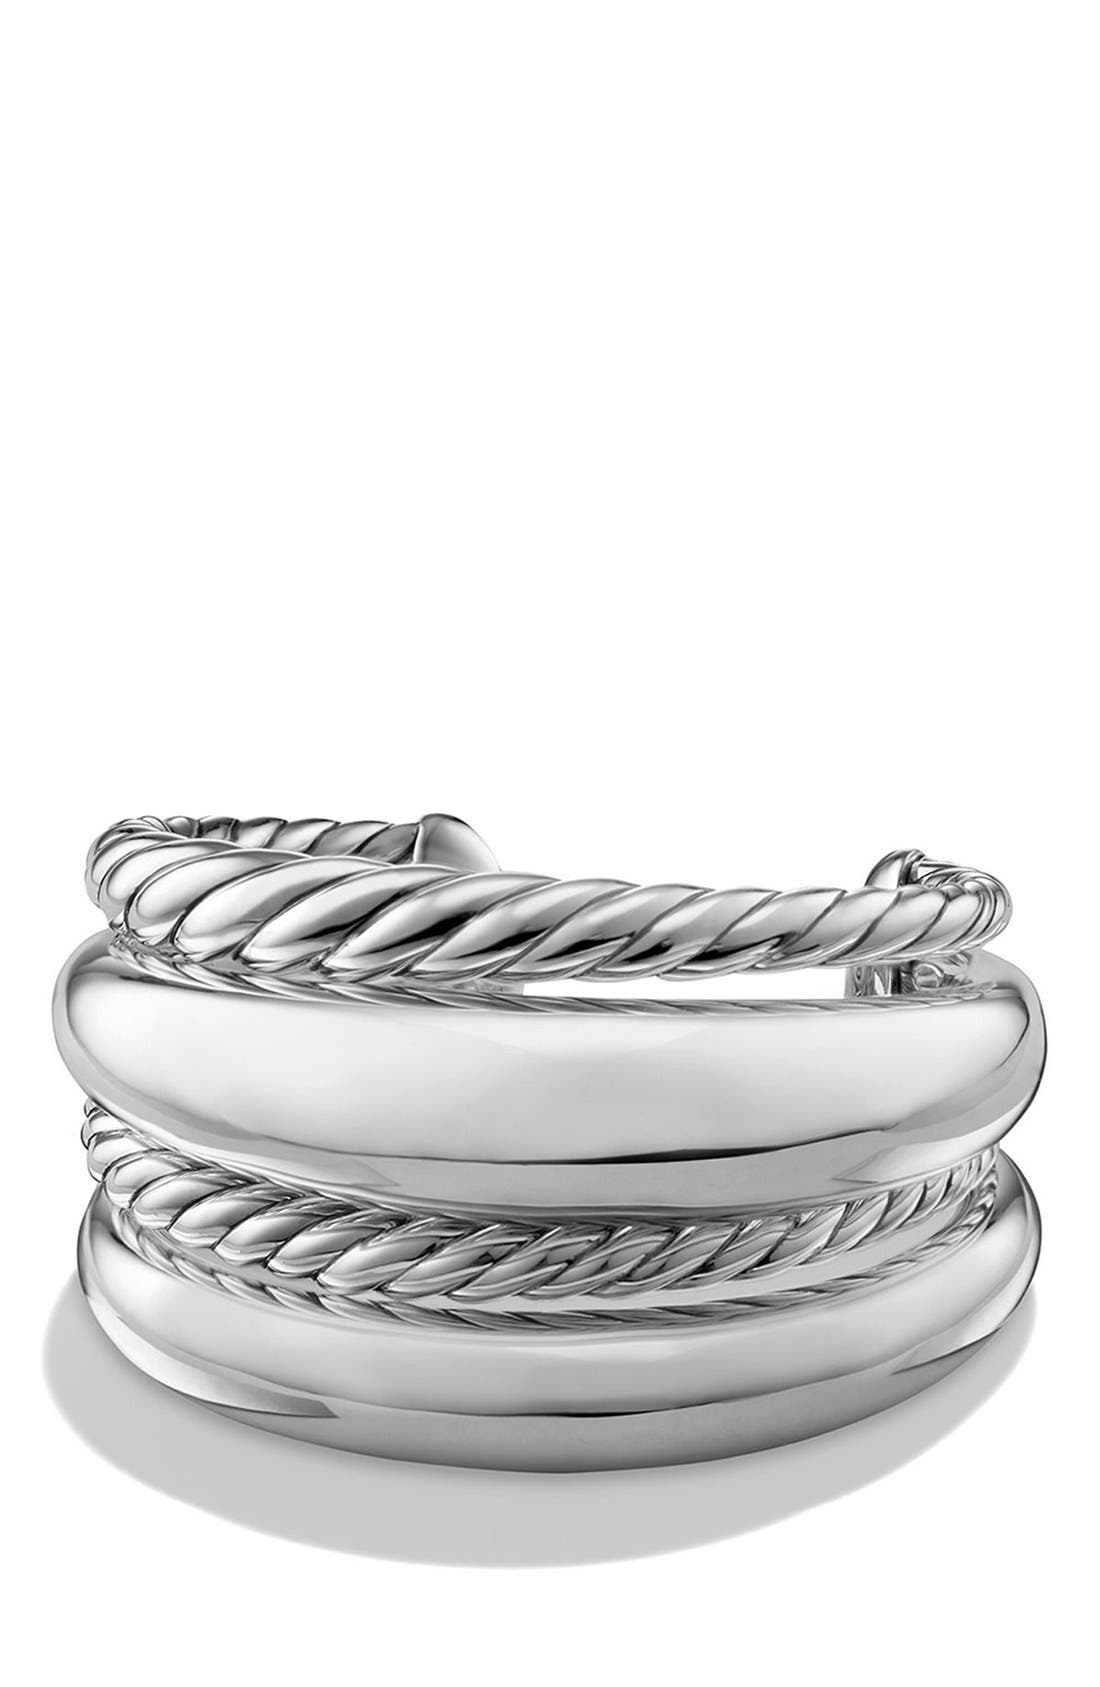 'Pure Form' Four-Row Sterling Silver Cuff,                             Main thumbnail 1, color,                             SILVER